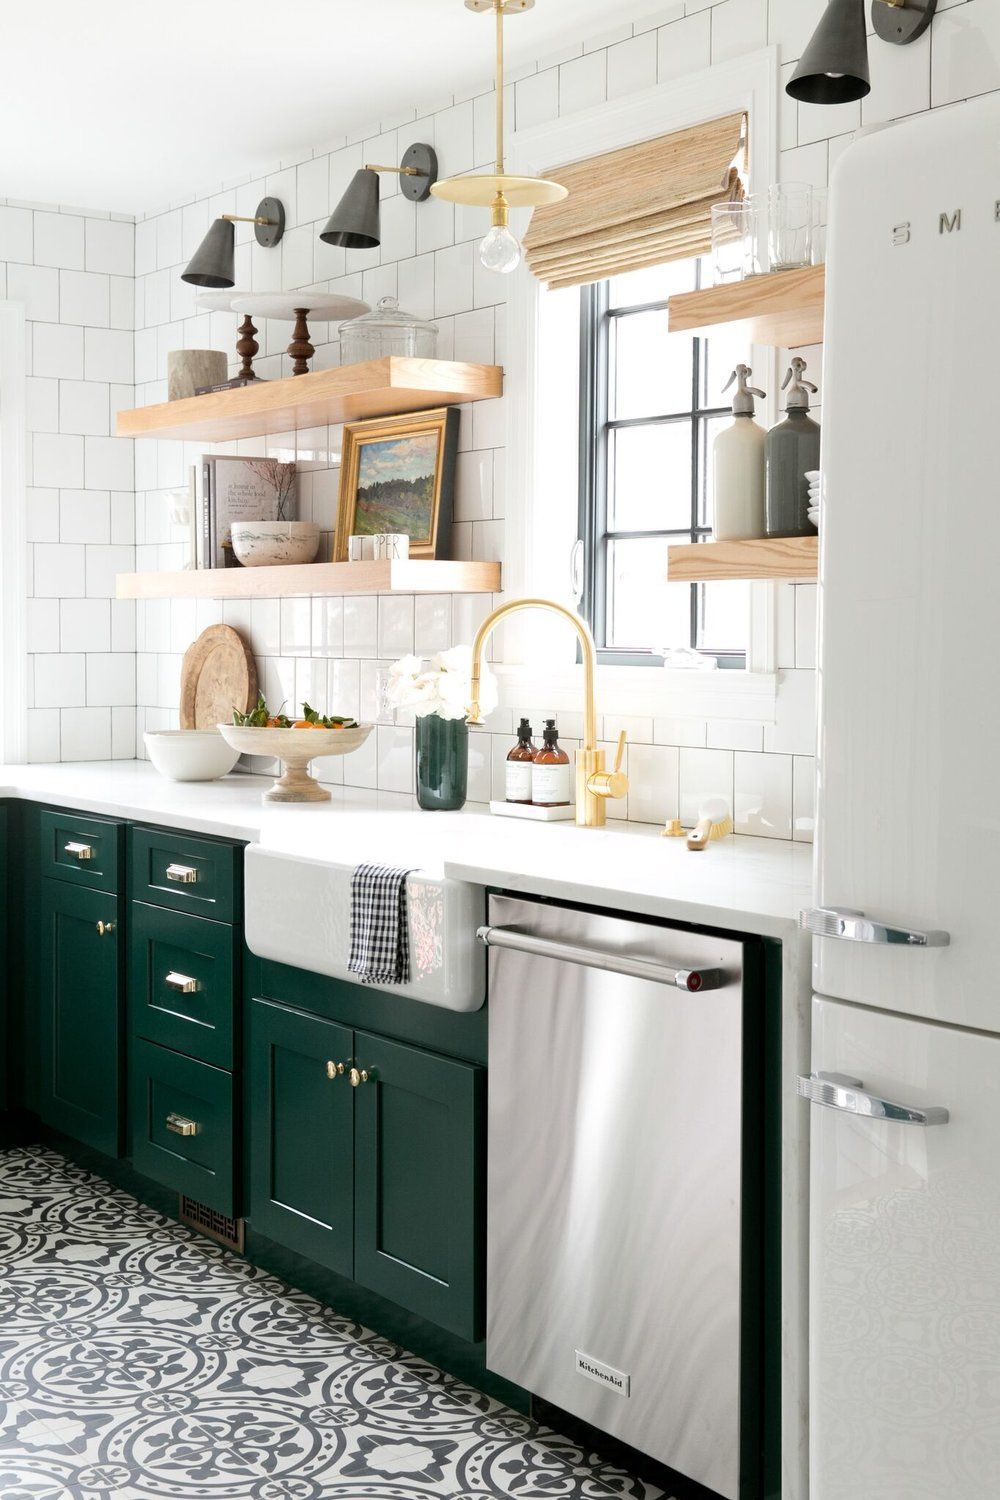 Modern Vintage Kitchen With Cabinets In Benjamin Moore S Forest